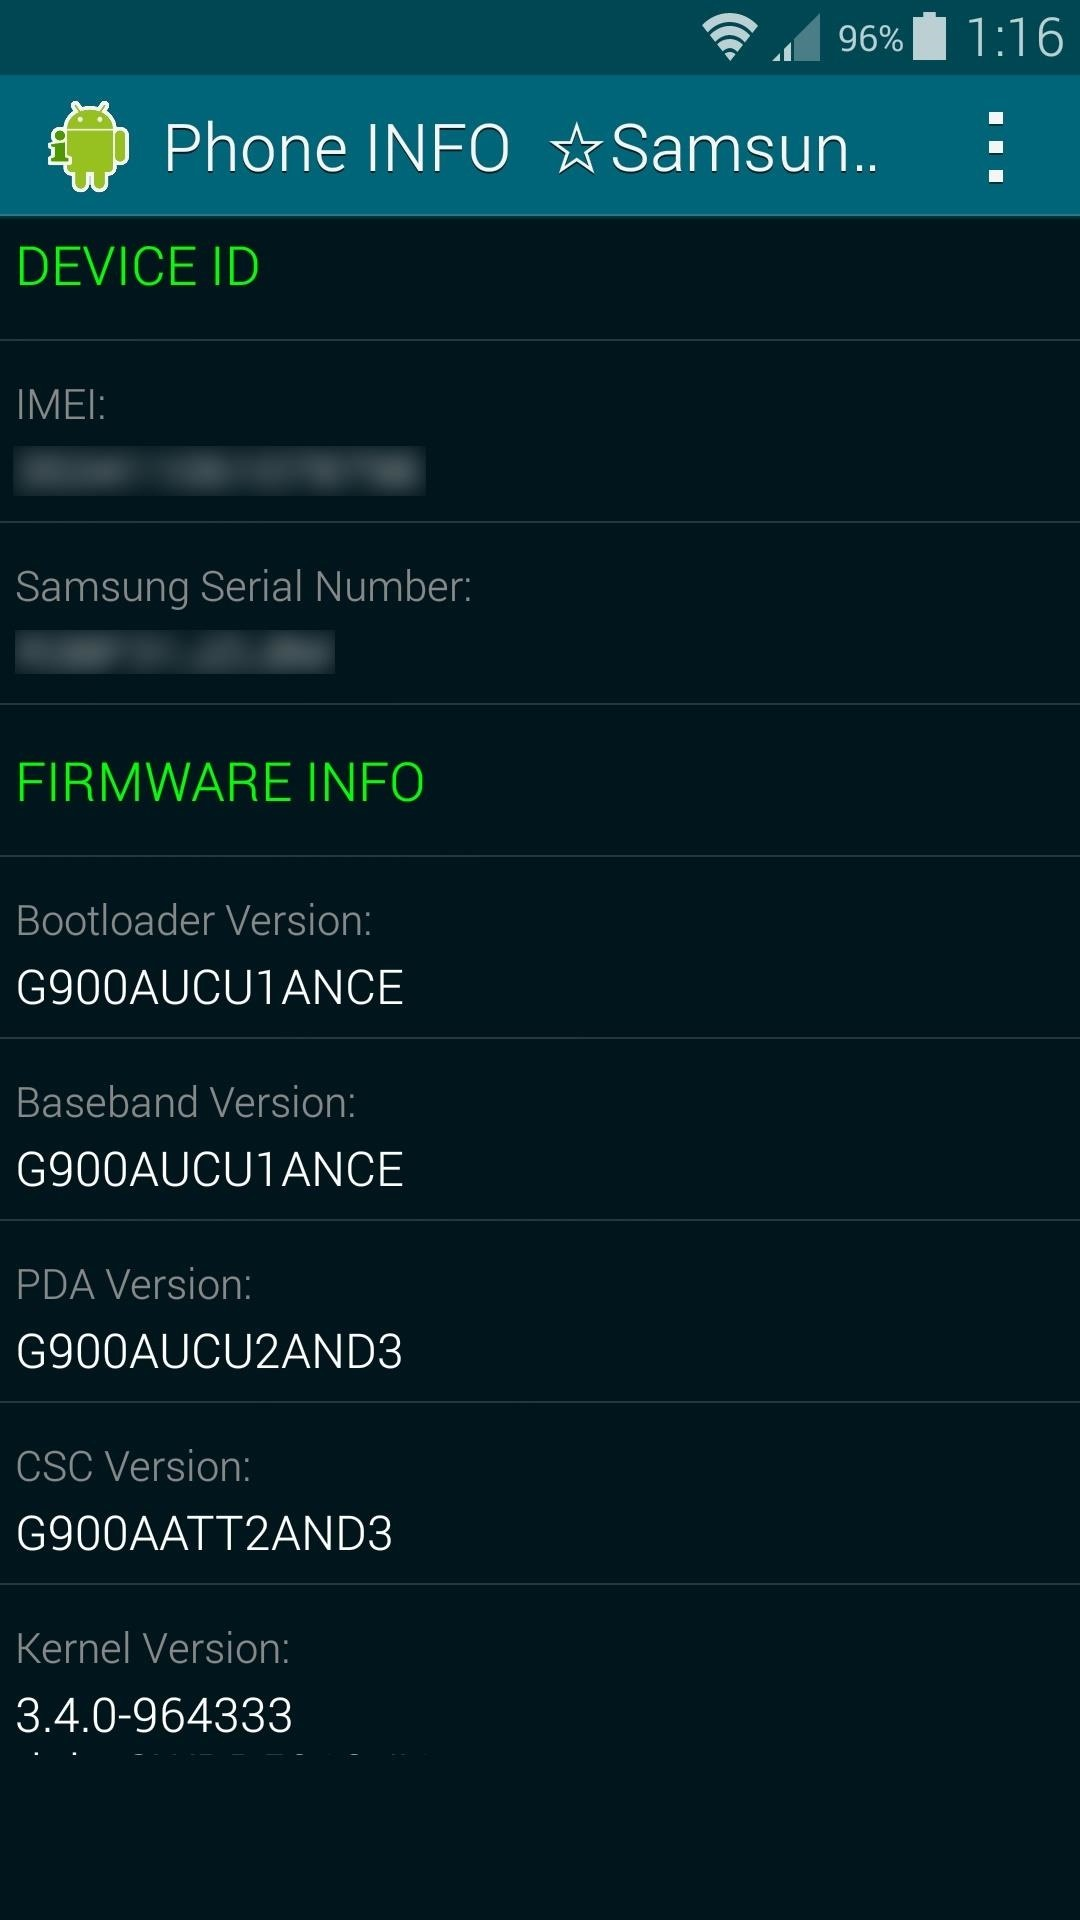 Find Out When & Where Your Samsung Galaxy Device Was Manufactured